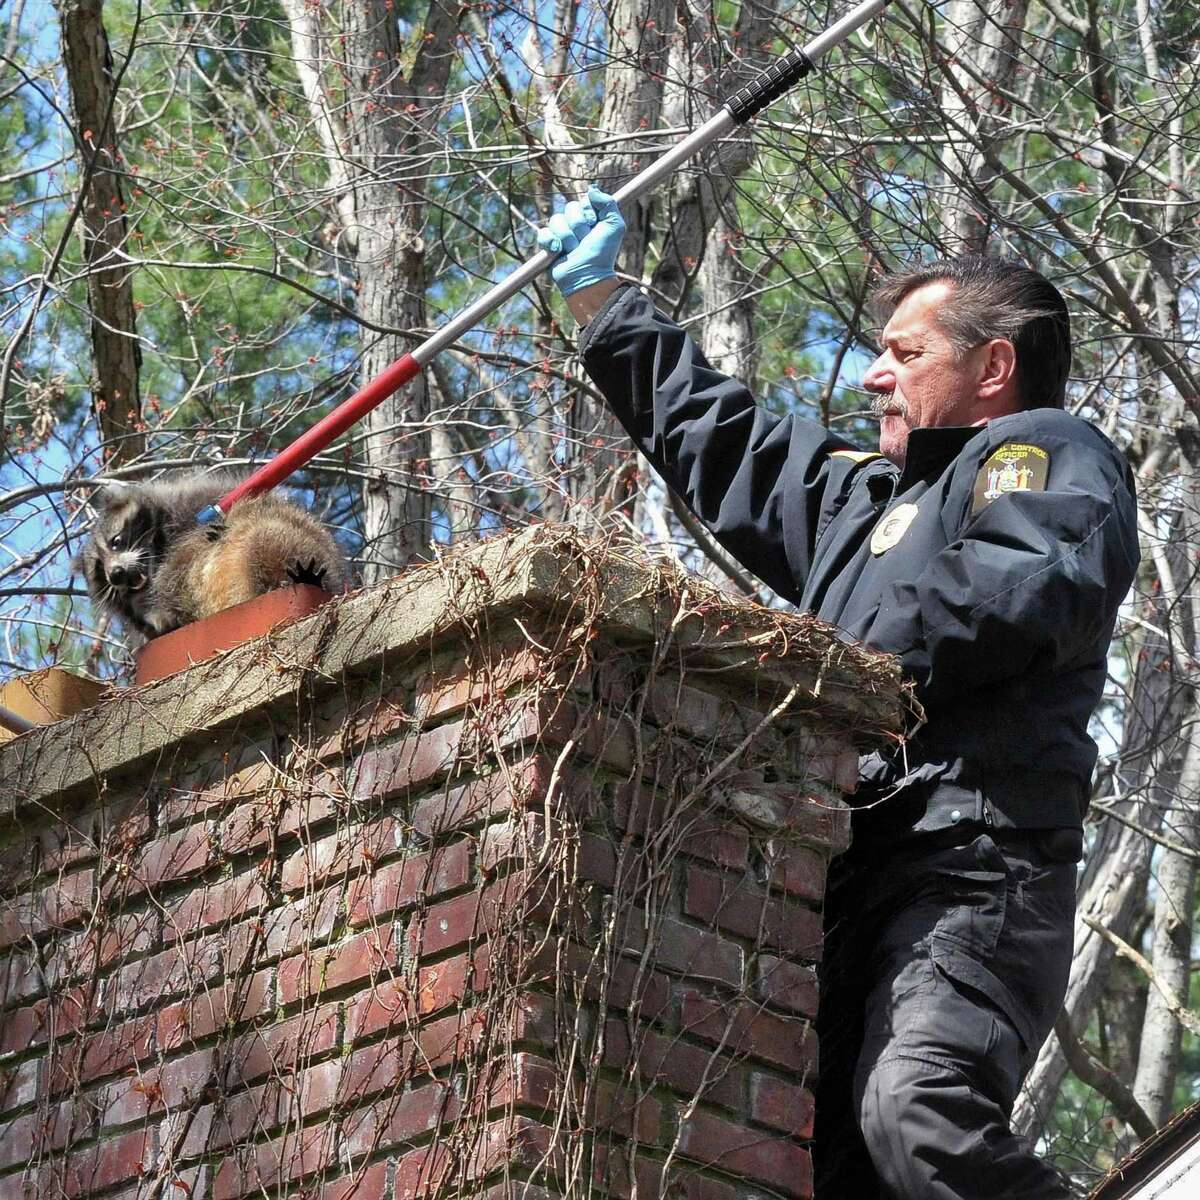 Clifton Park animal control officer Bill Lehman removes a suspected rabid raccoon from the chimney of a Clifton Park home Monday April 2, 2012. Originally suspected of disease the raccoon turned out to just be pregnant and was release. (John Carl D'Annibale / Times Union)